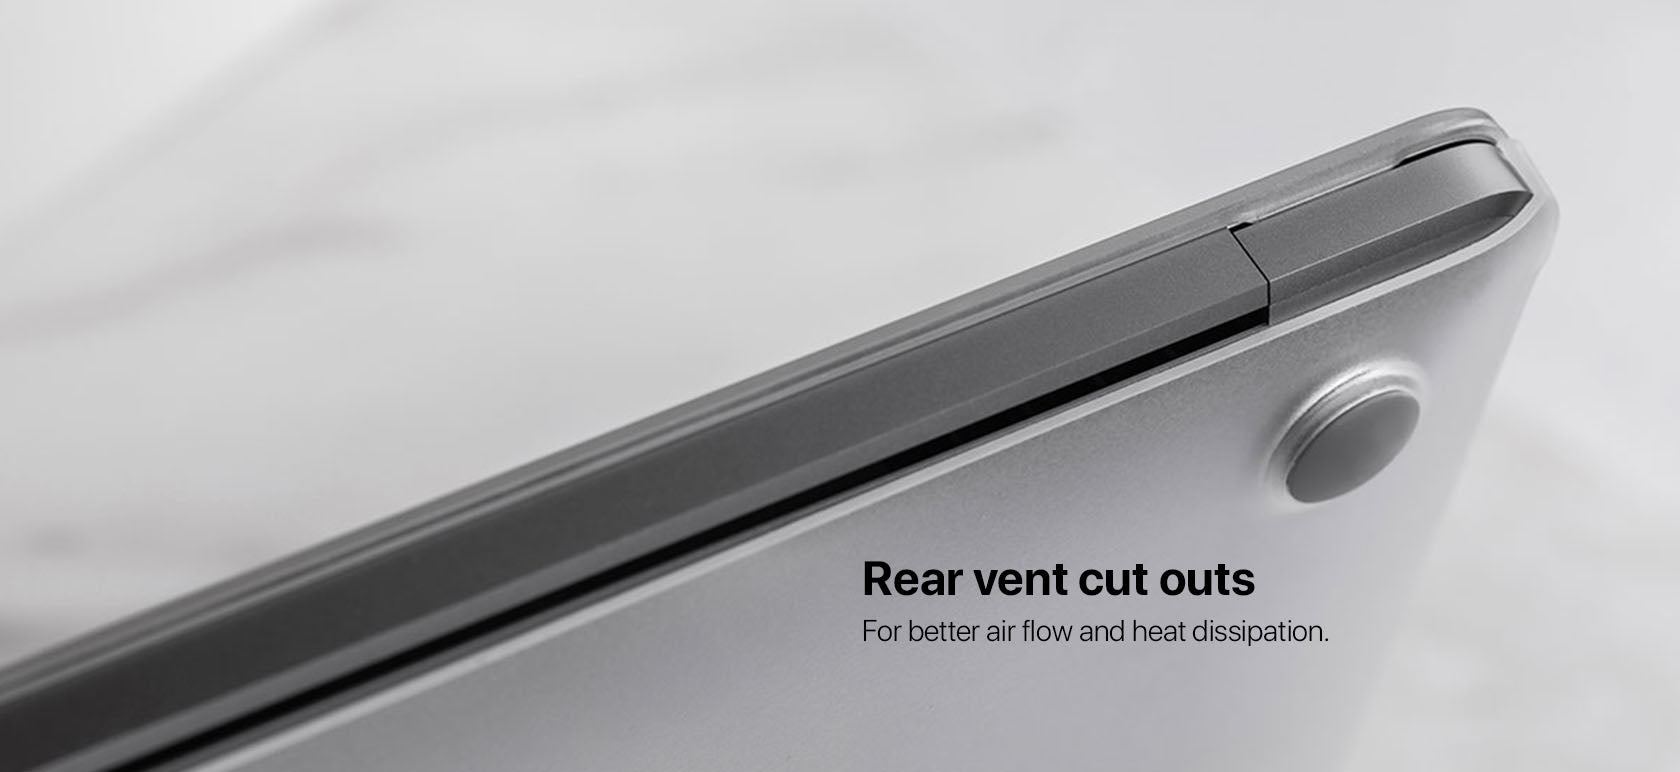 Rear vent cut outs For better air flow and heat dissipation.